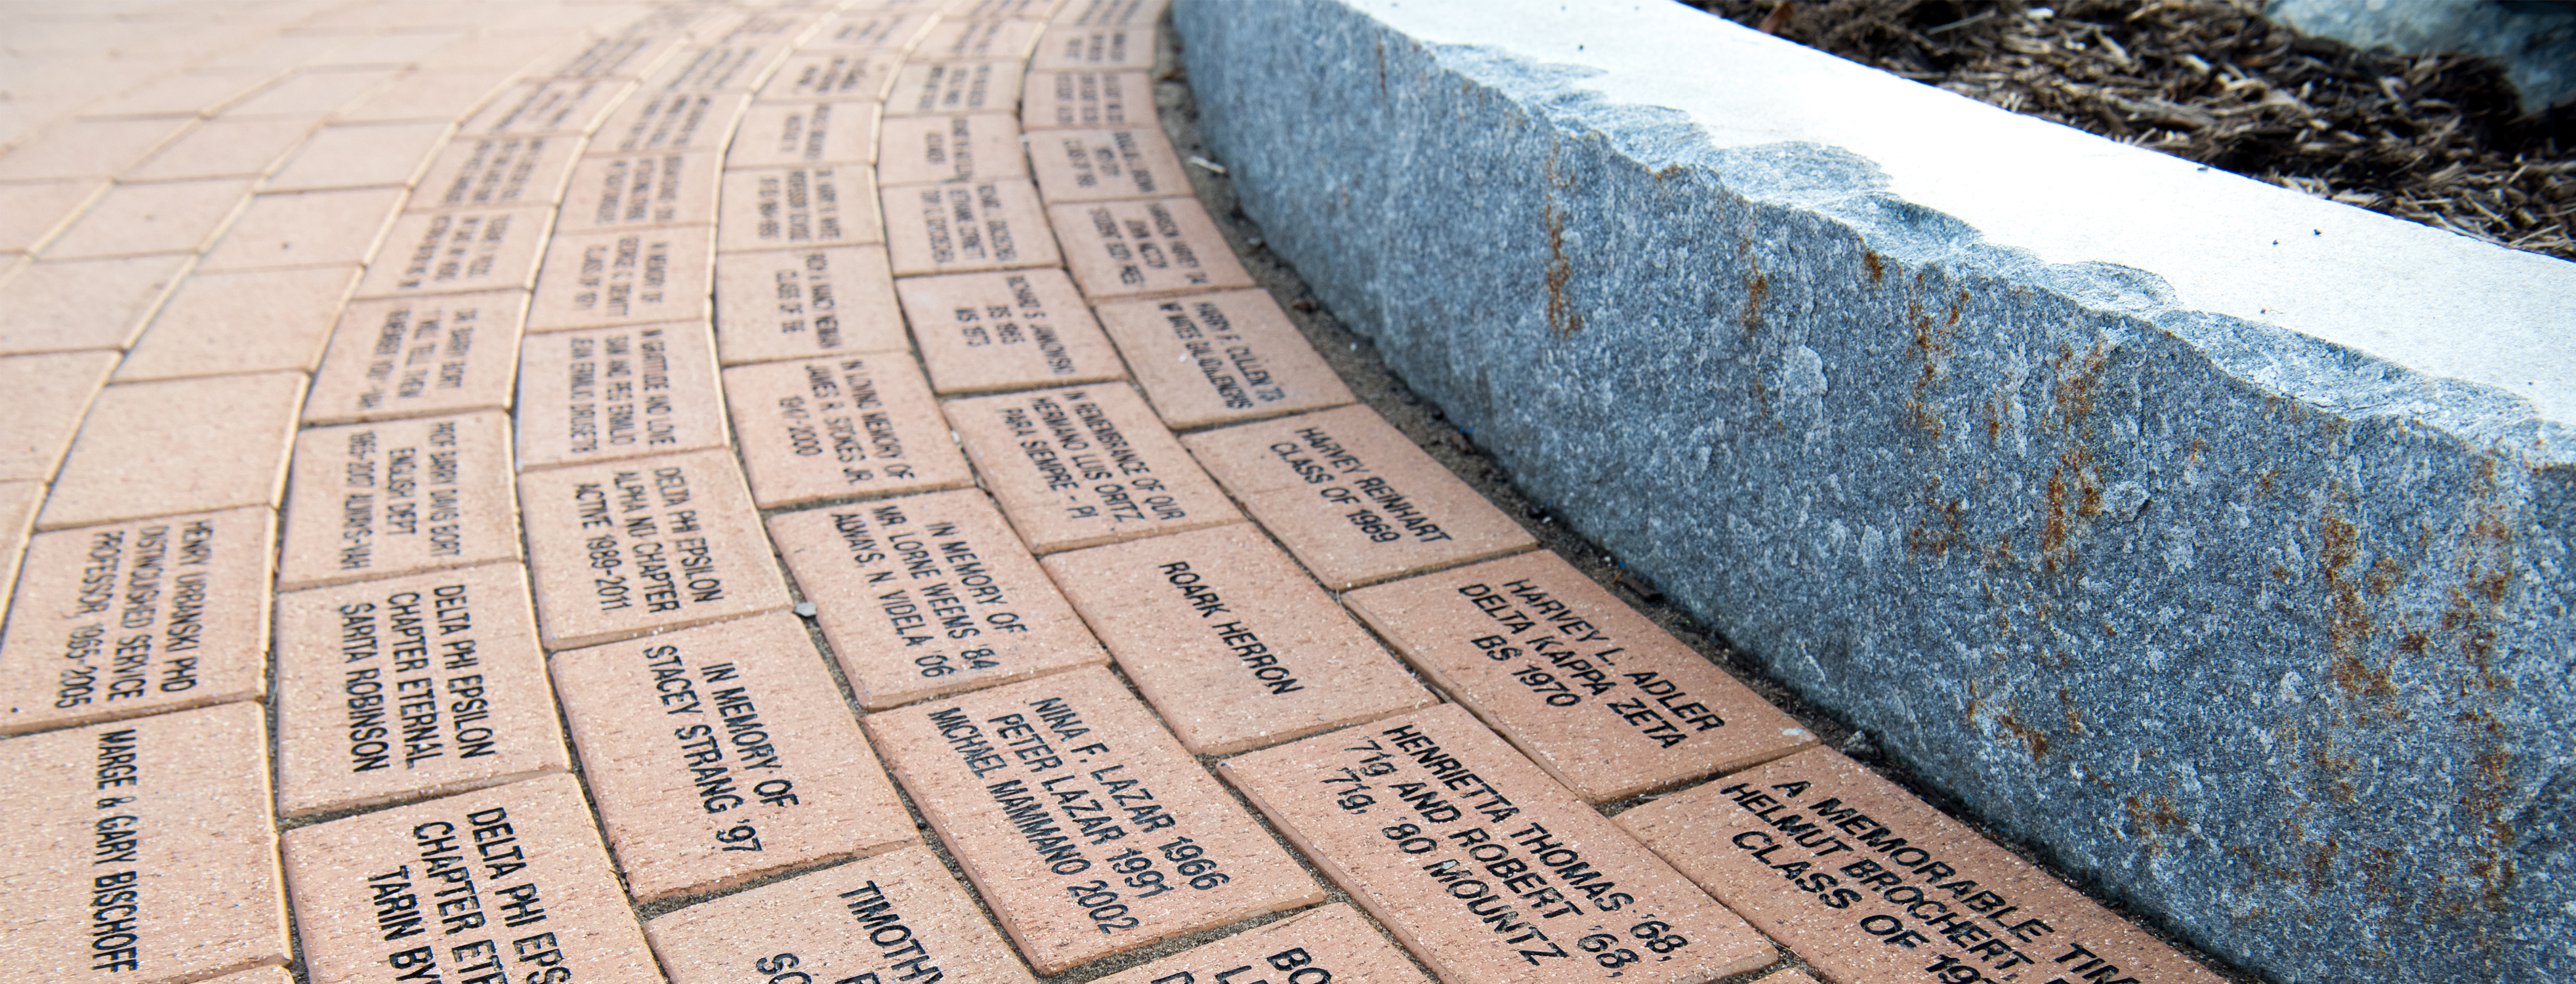 Close-up of the bricks on the walk of honor